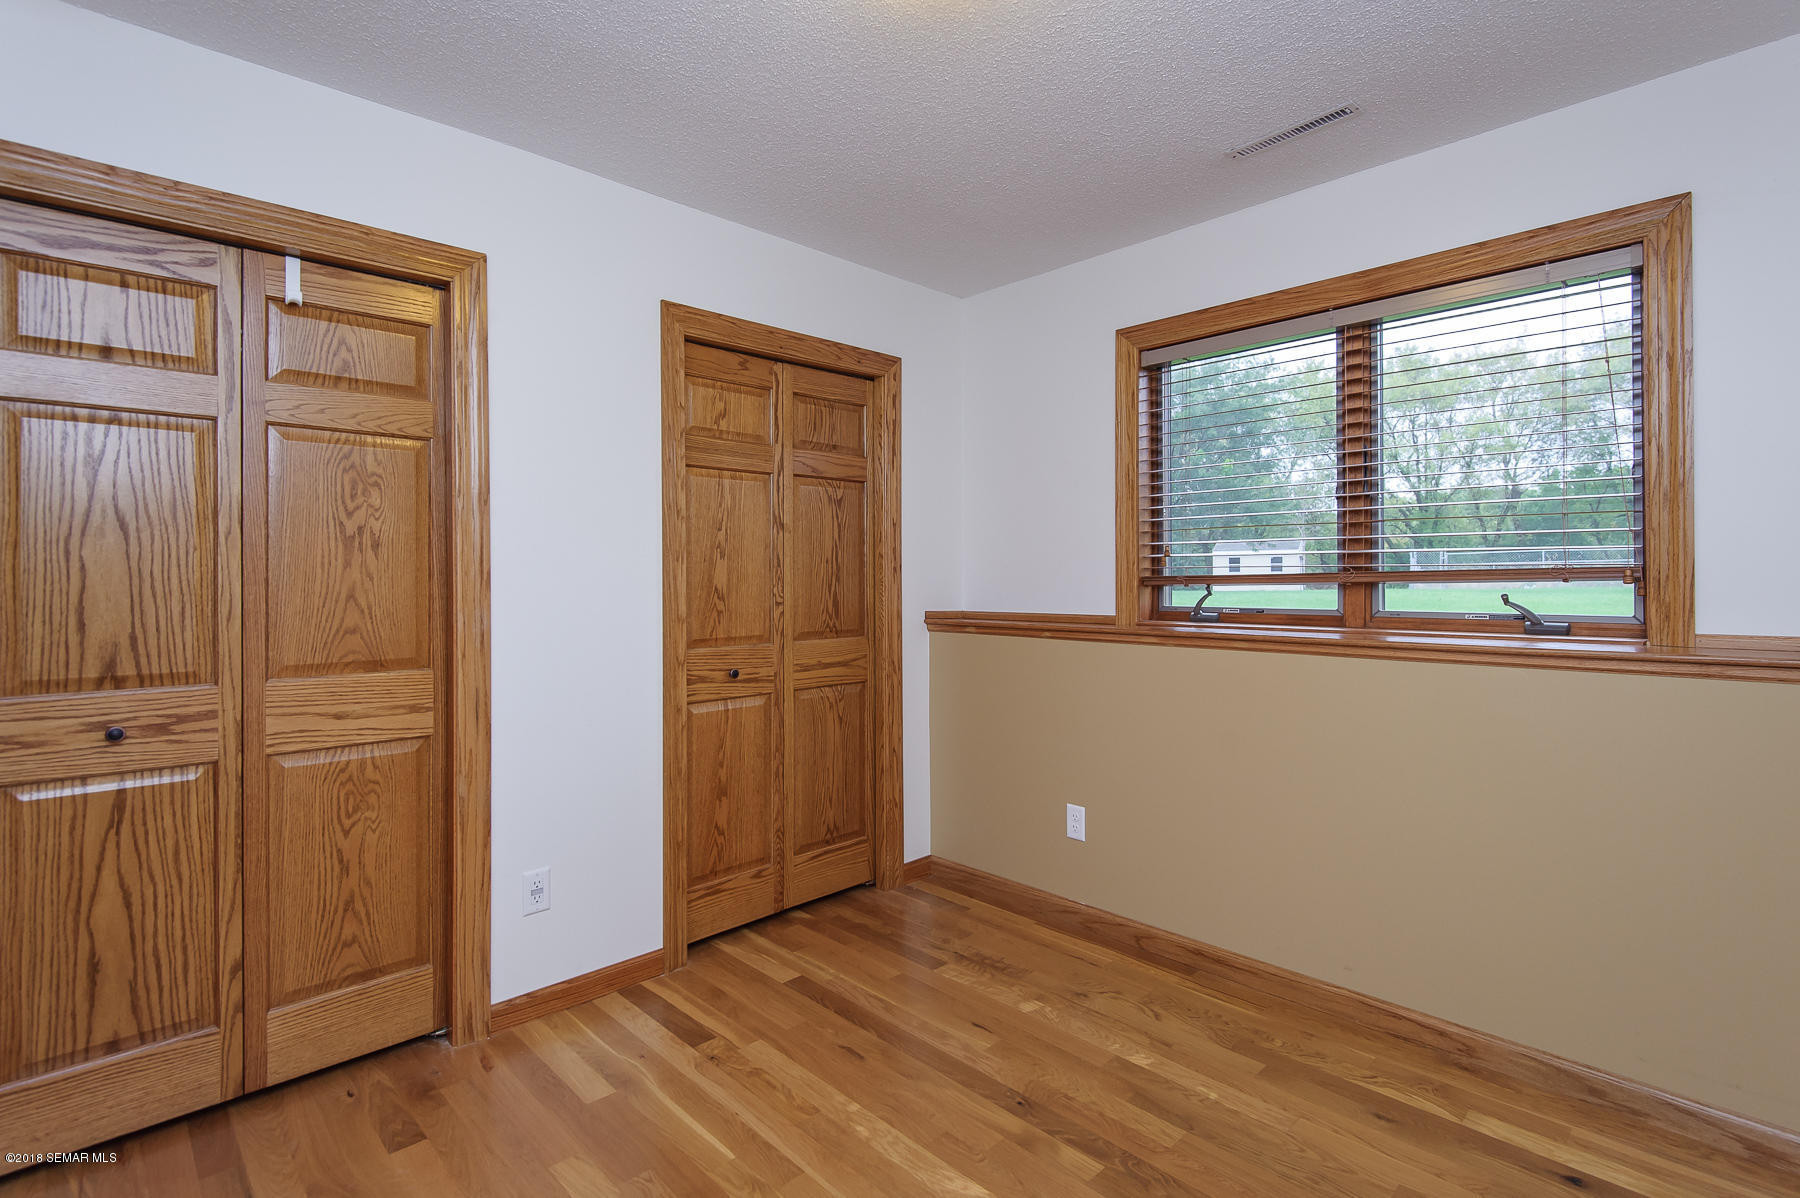 Yd Hardwood Floors Of 5071 Manor Brook Drive Nw Rochester Mn 55901 Single Family for 5071 Manor Brook Drive Nw Rochester Mn 55901 Single Family Houses Postbulletin Com